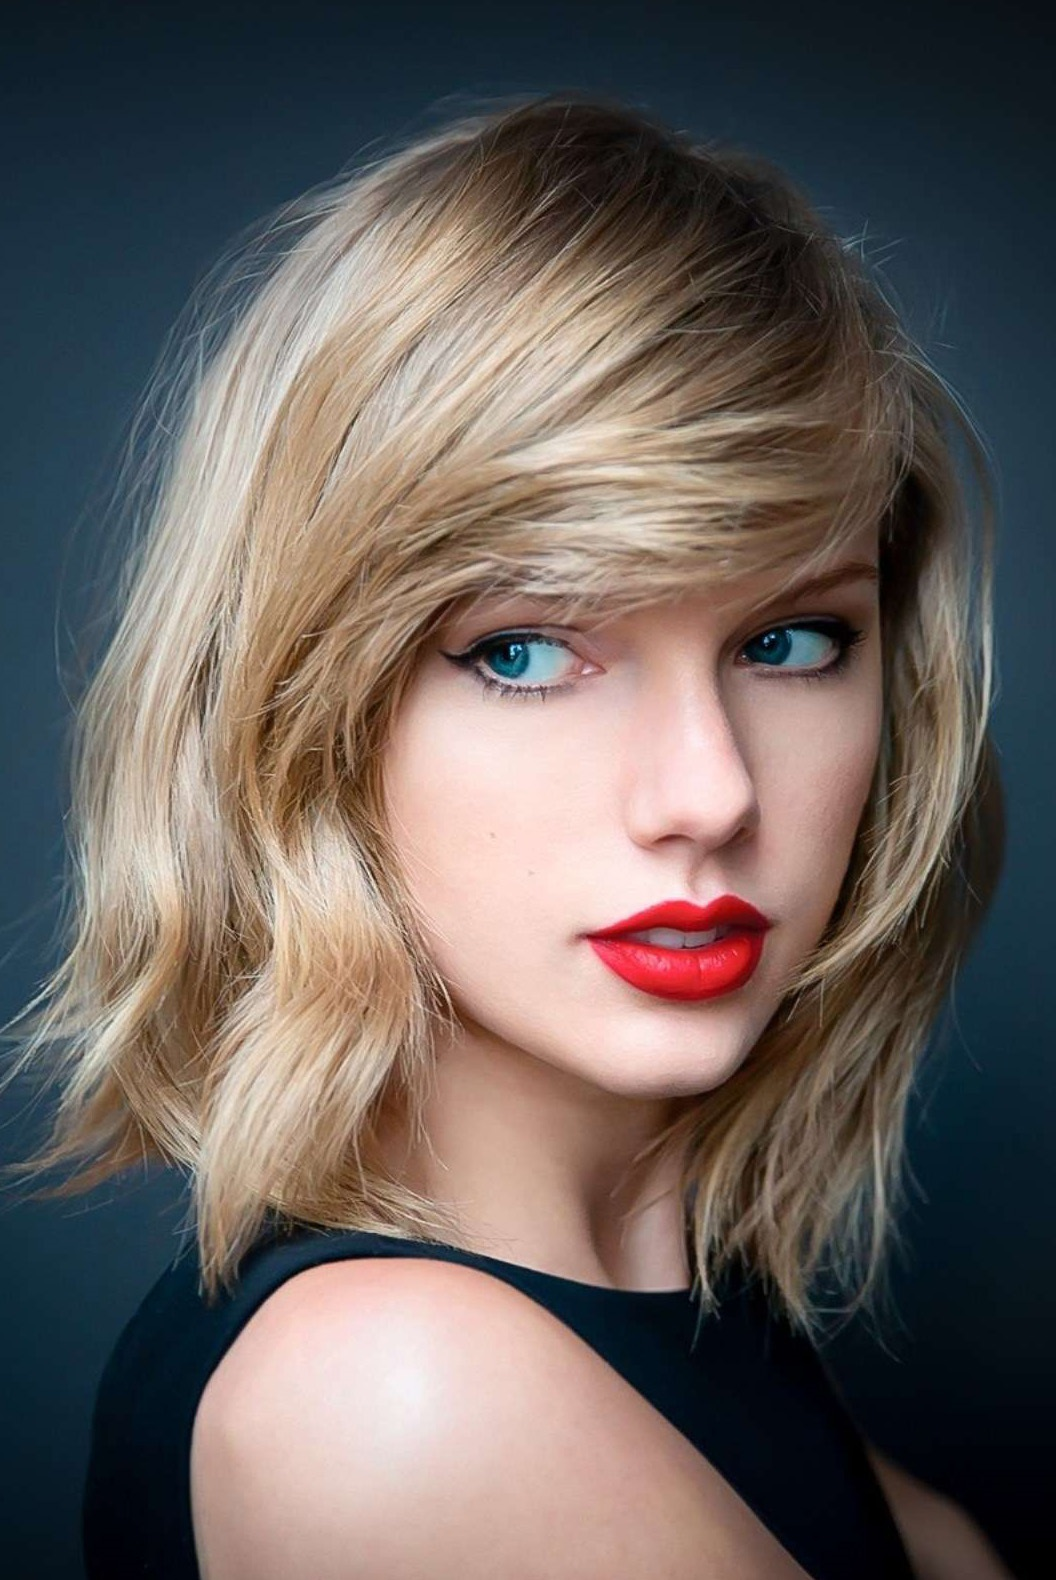 Taylor Swift Biodata Taylor Swift Album